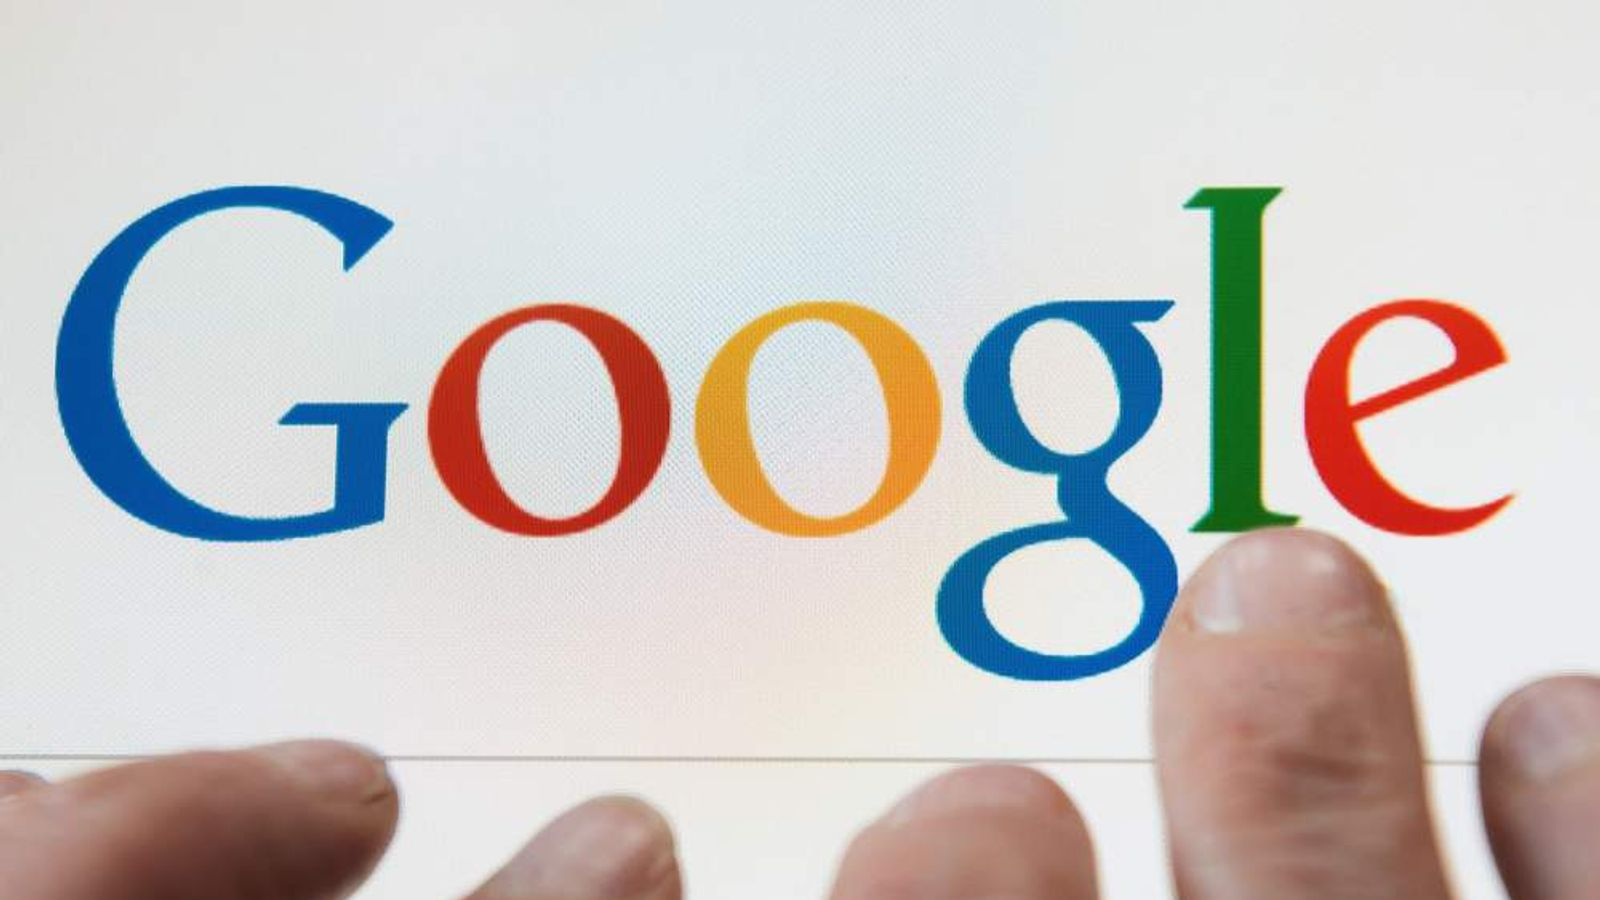 Google Bombarded With Requests To Delete Info